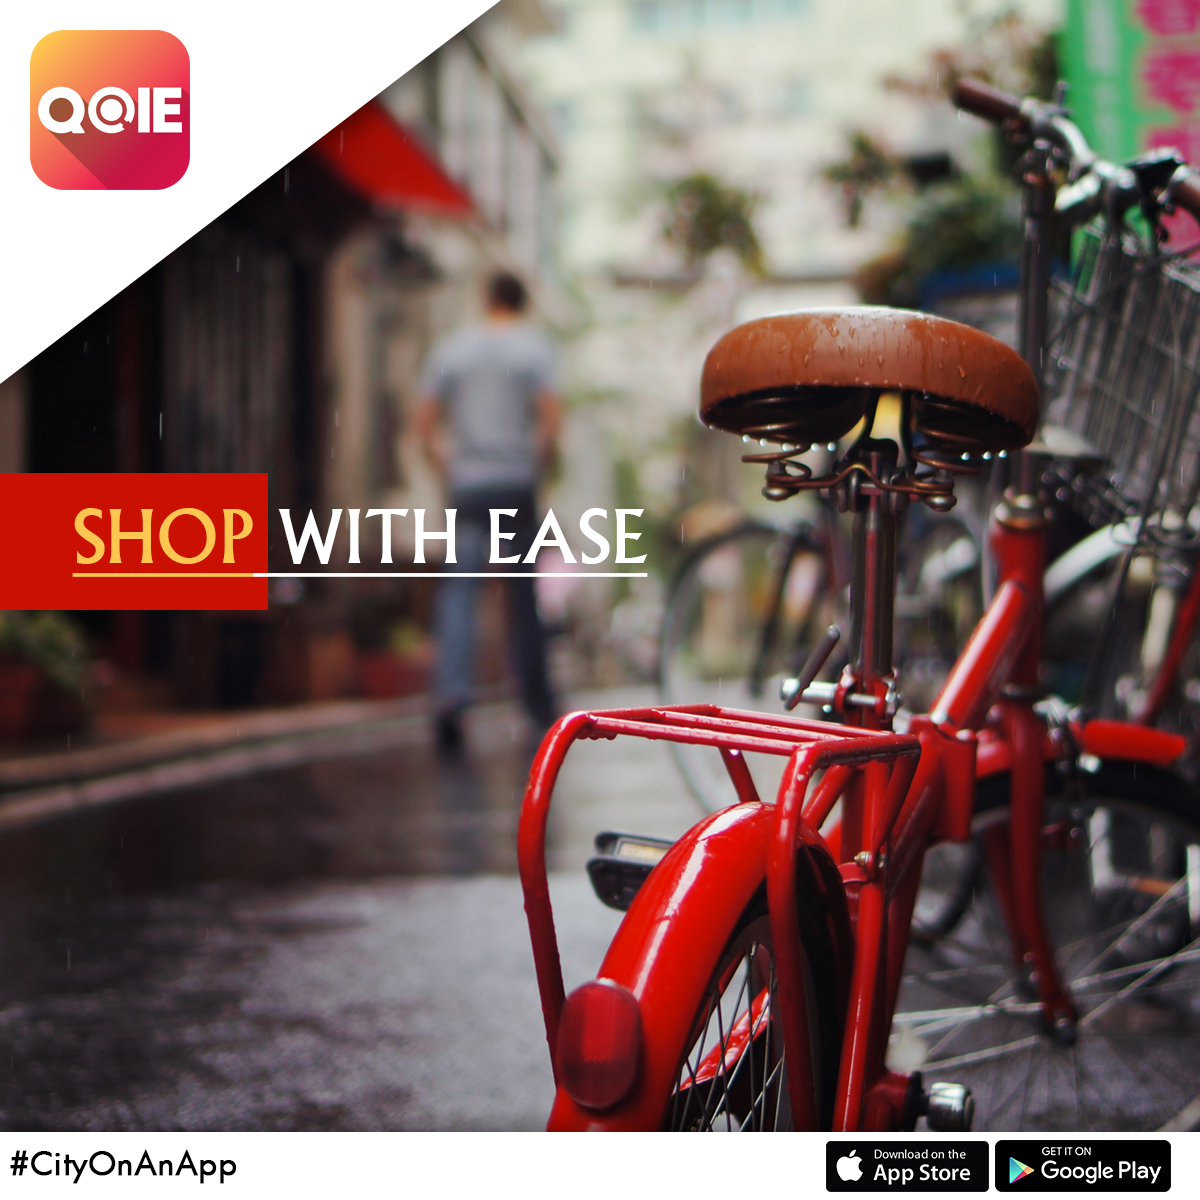 Take your CityOnAnApp to go shopping with ease. Download